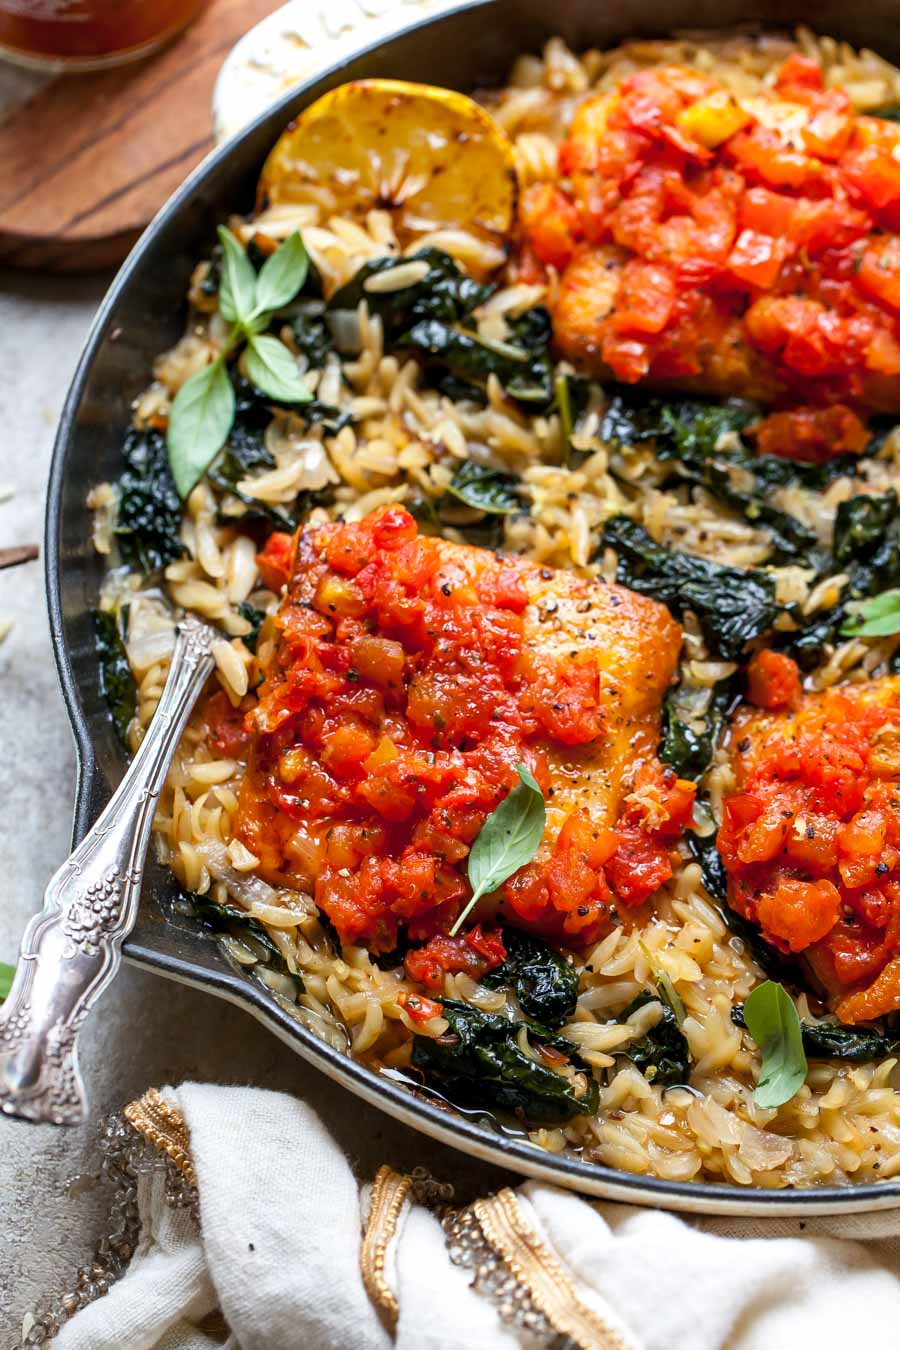 Wild salmon and orzo with kale